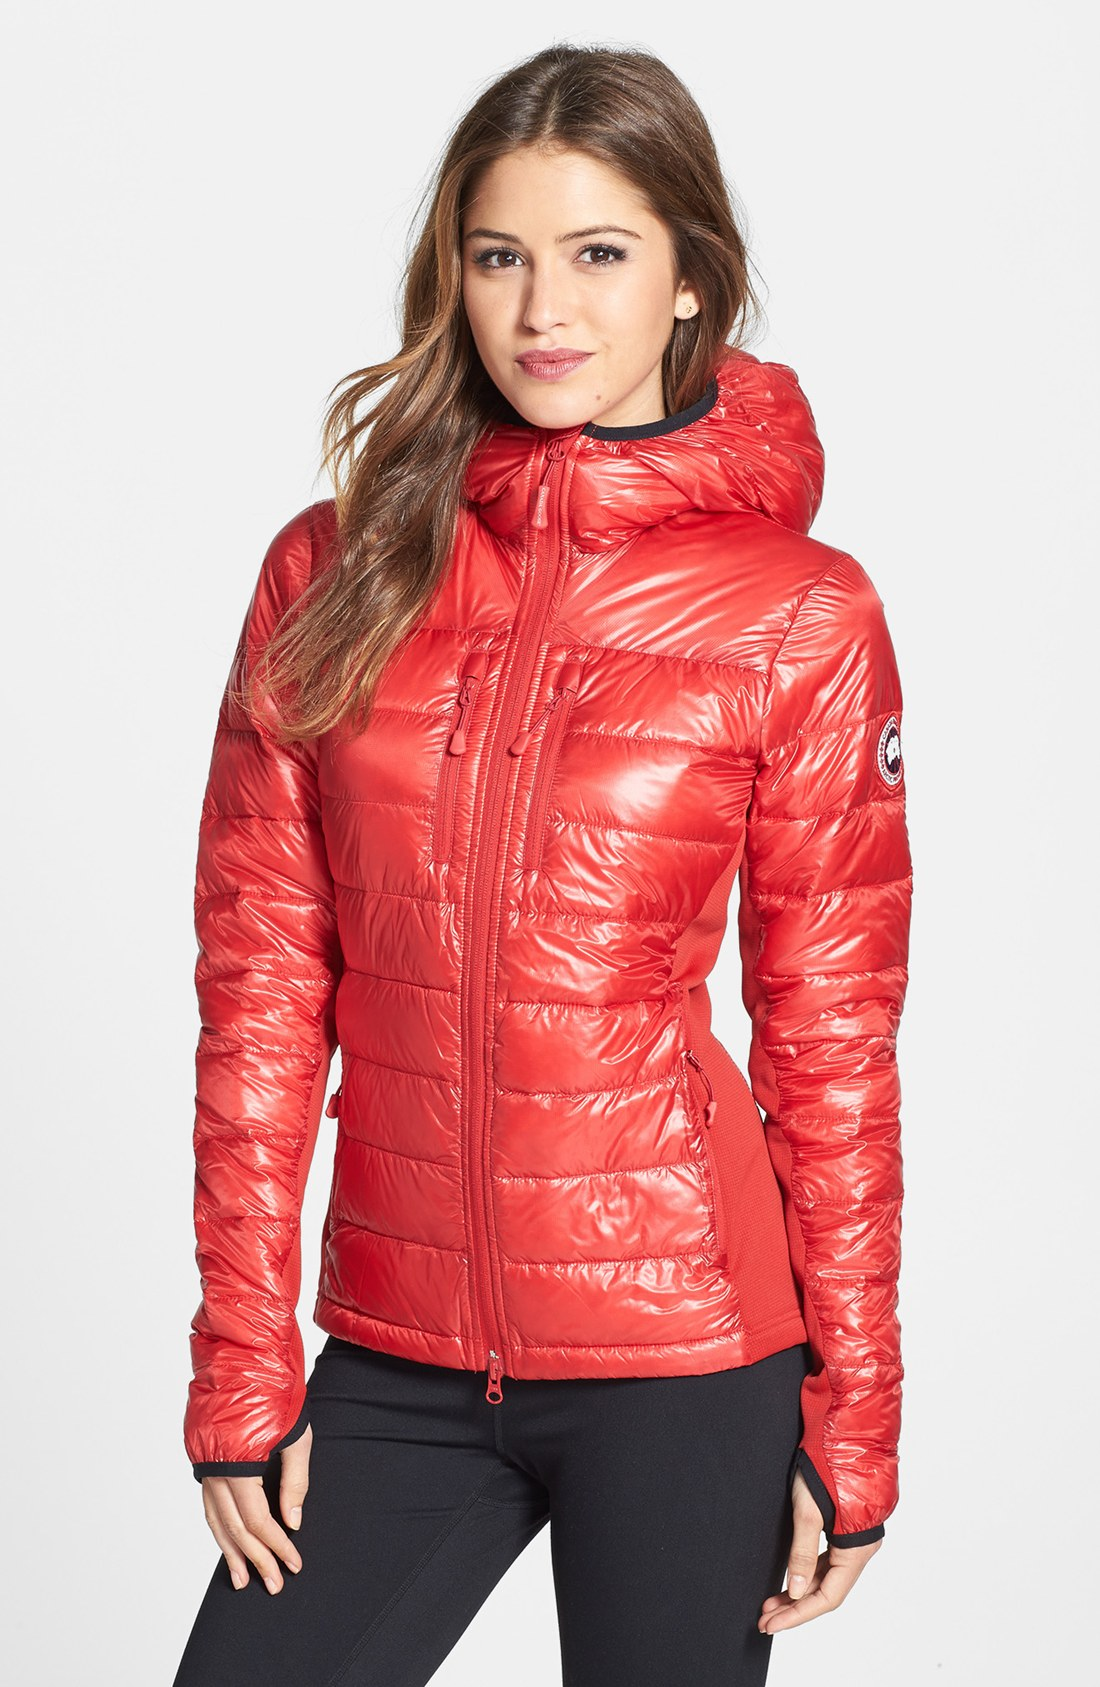 Women goose down jacket